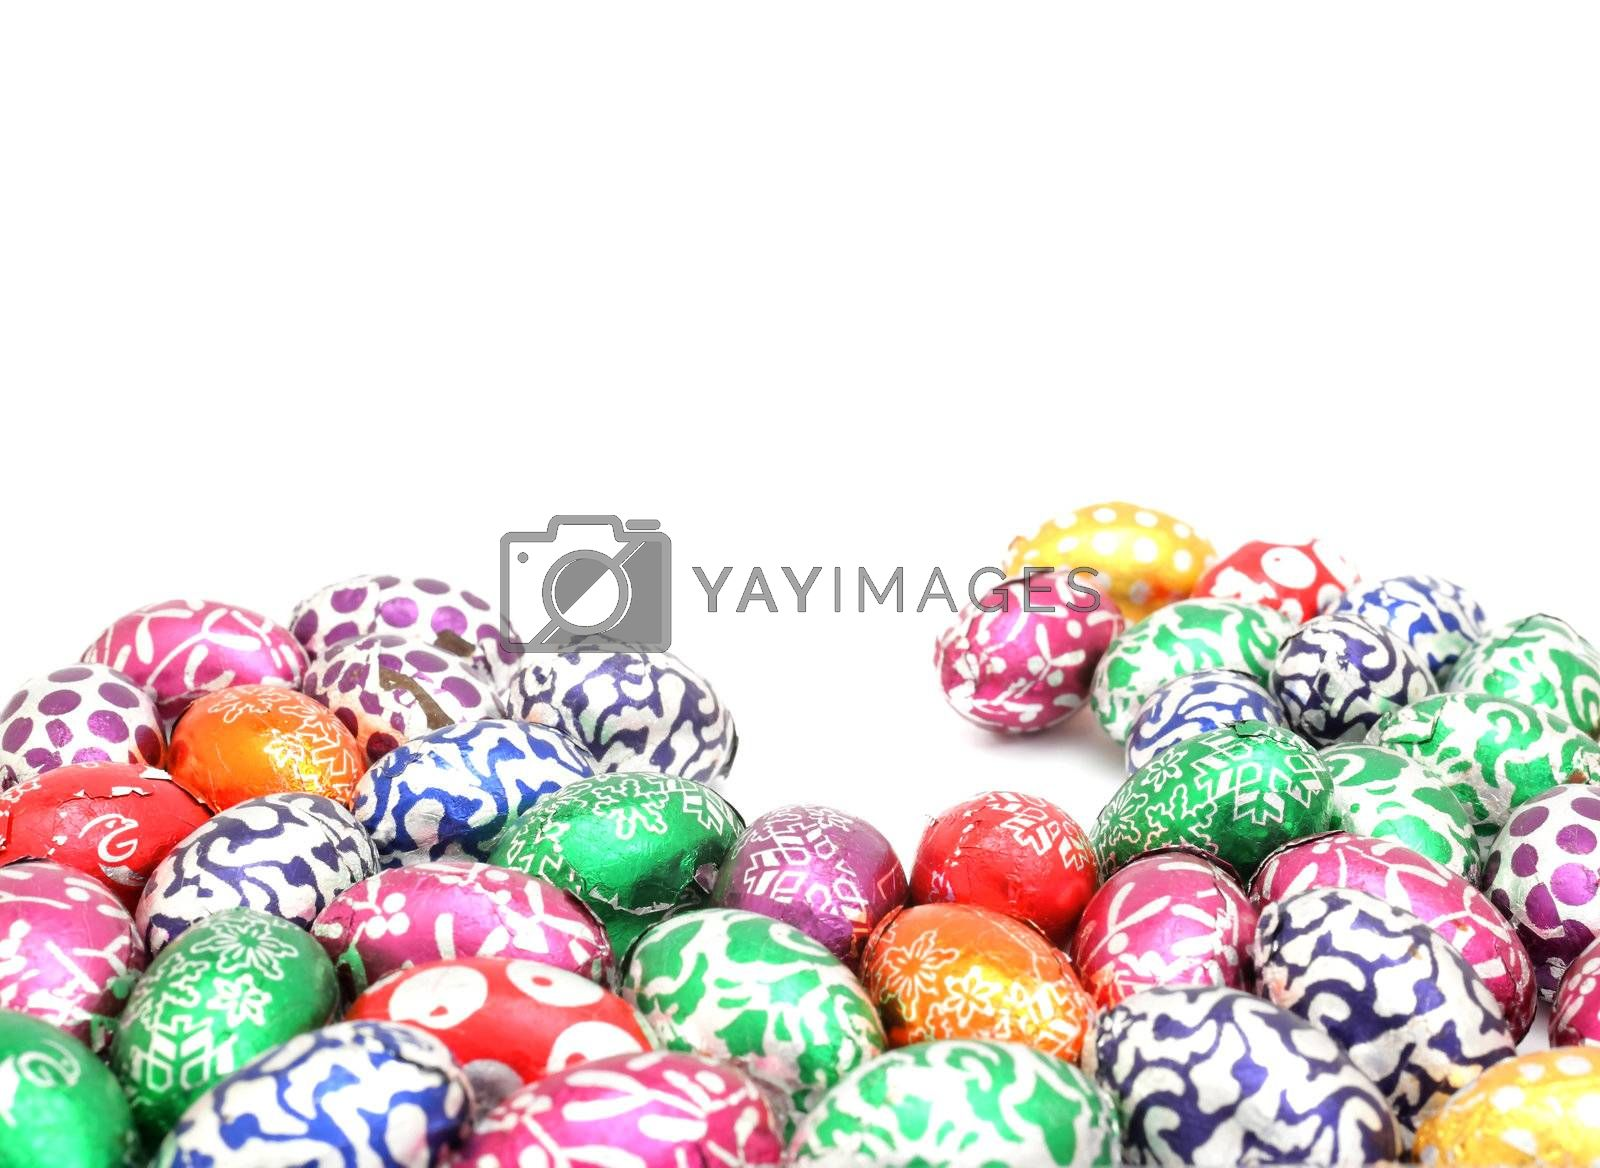 Royalty free image of Colorful easter eggs background by leungchopan